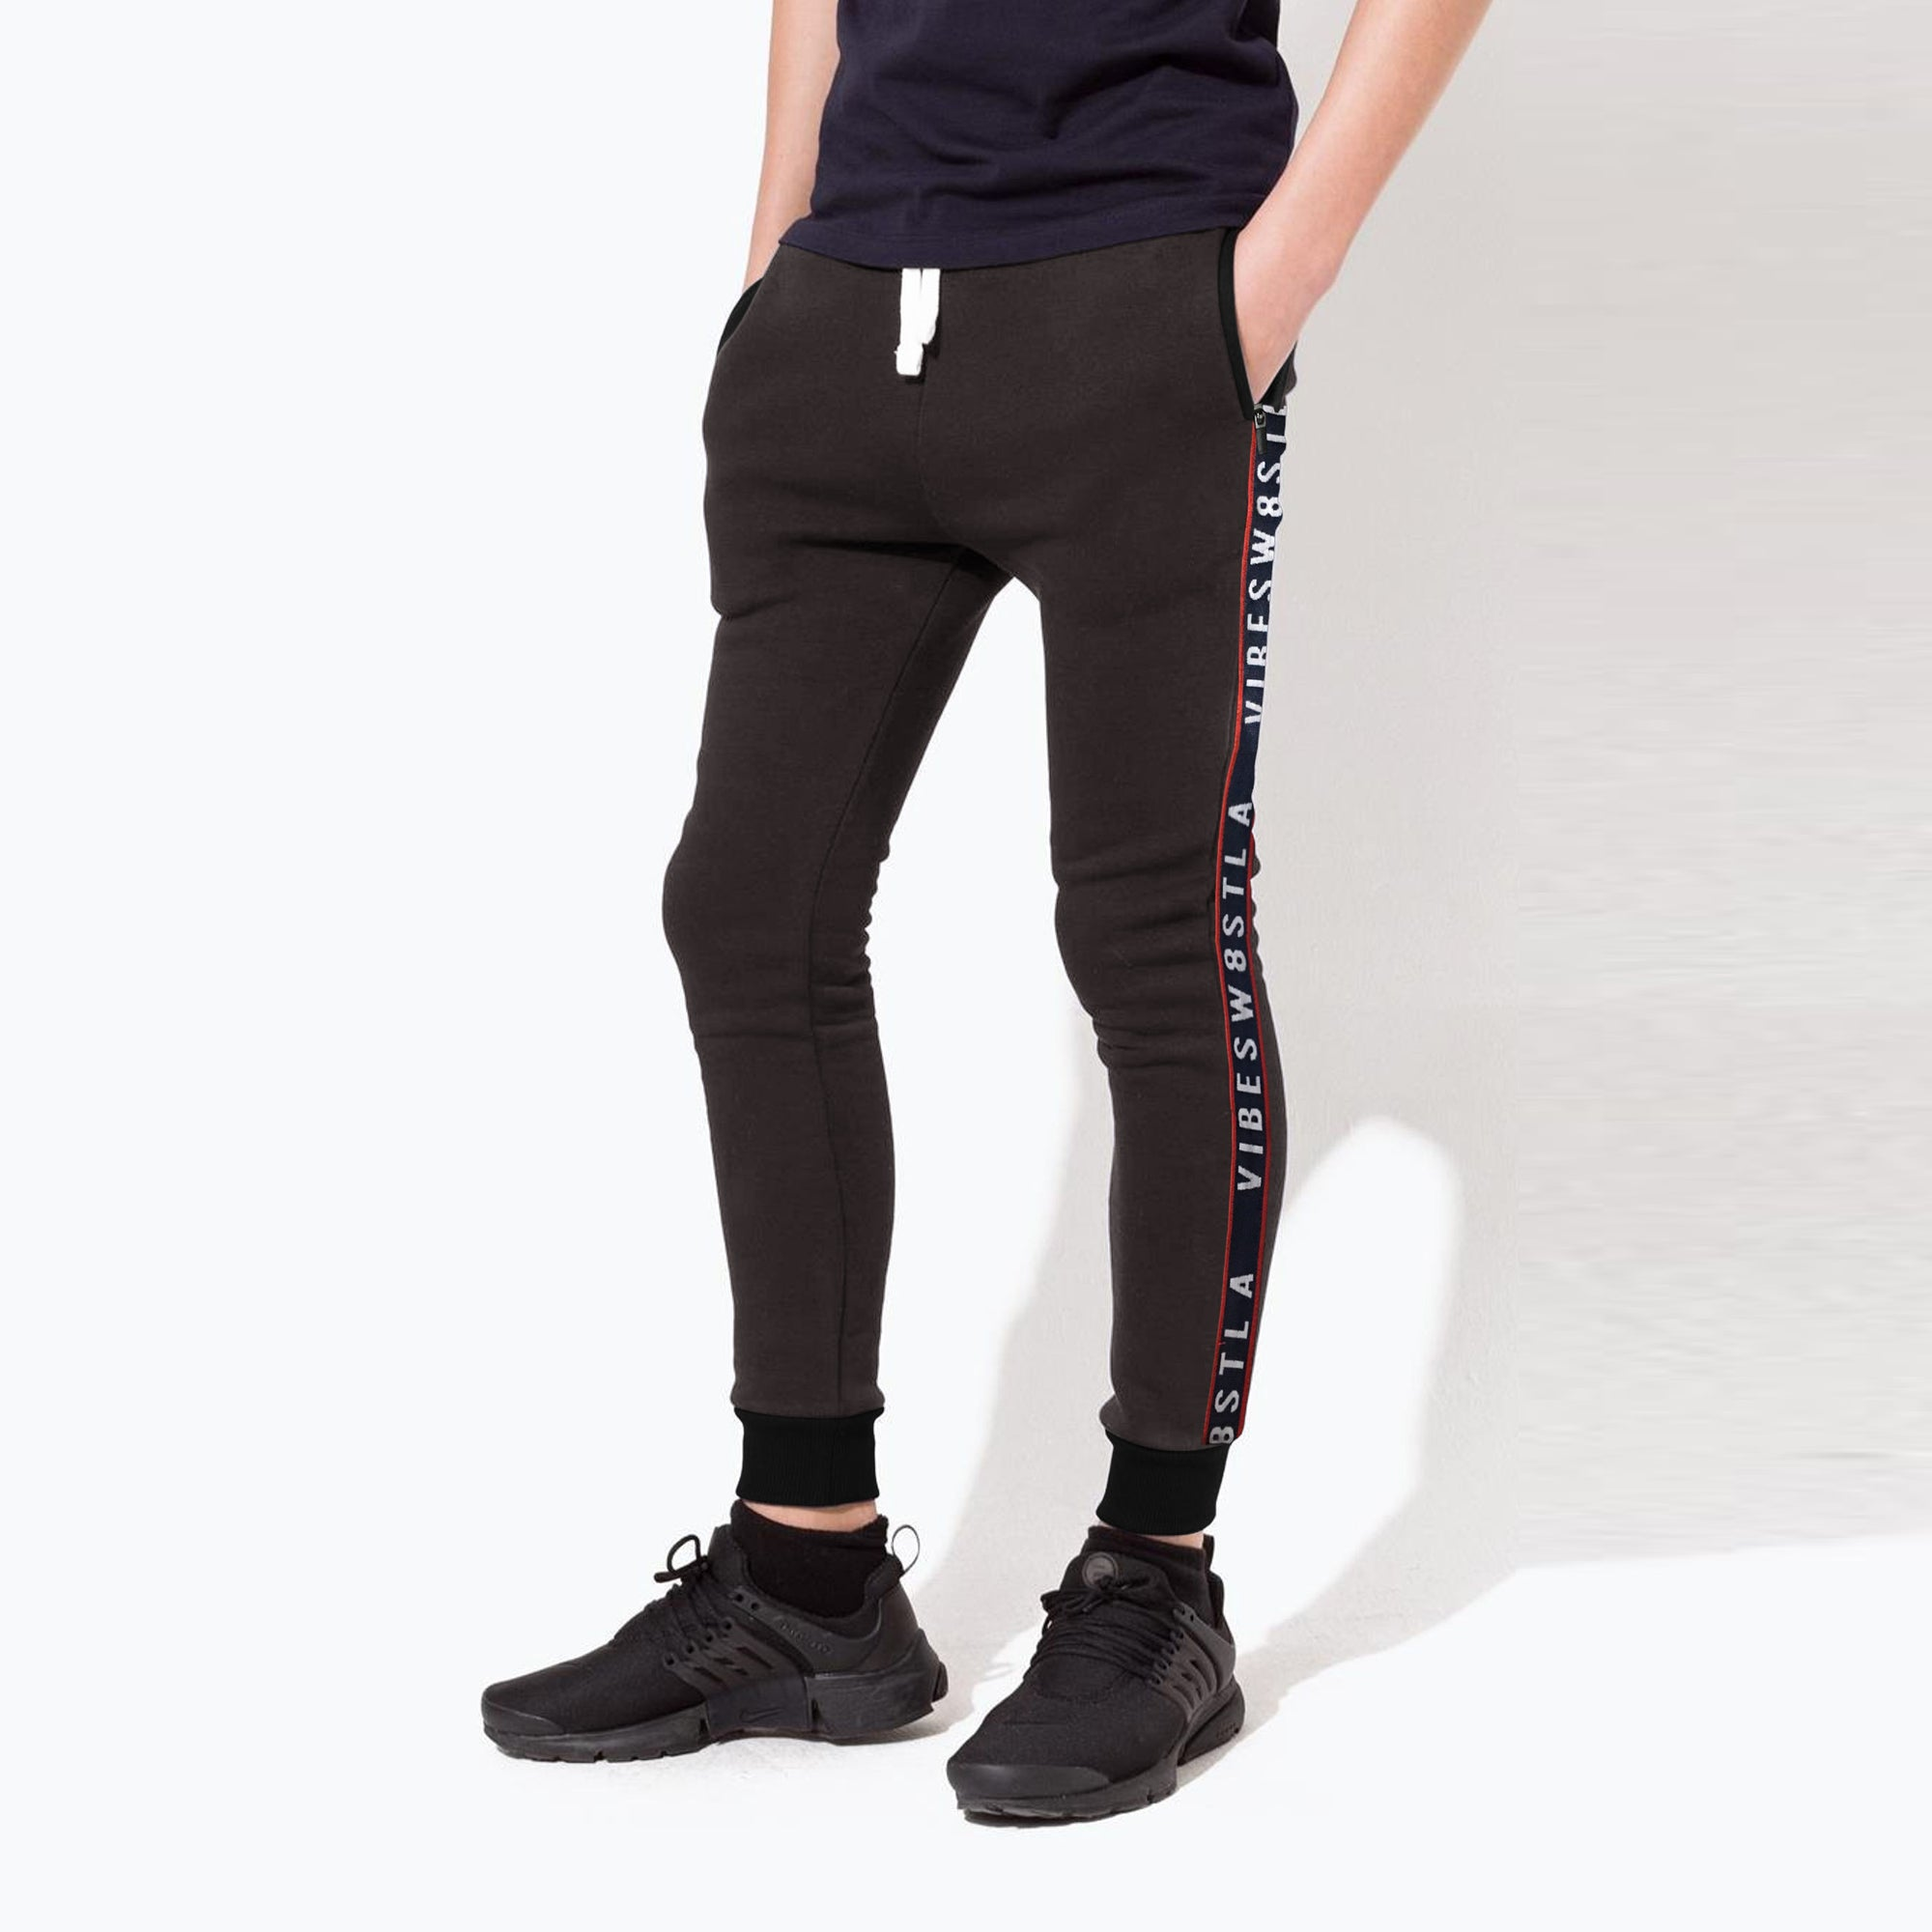 Next Slim Fit Jogger Trouser For Kids-Rosy Black-NA11050